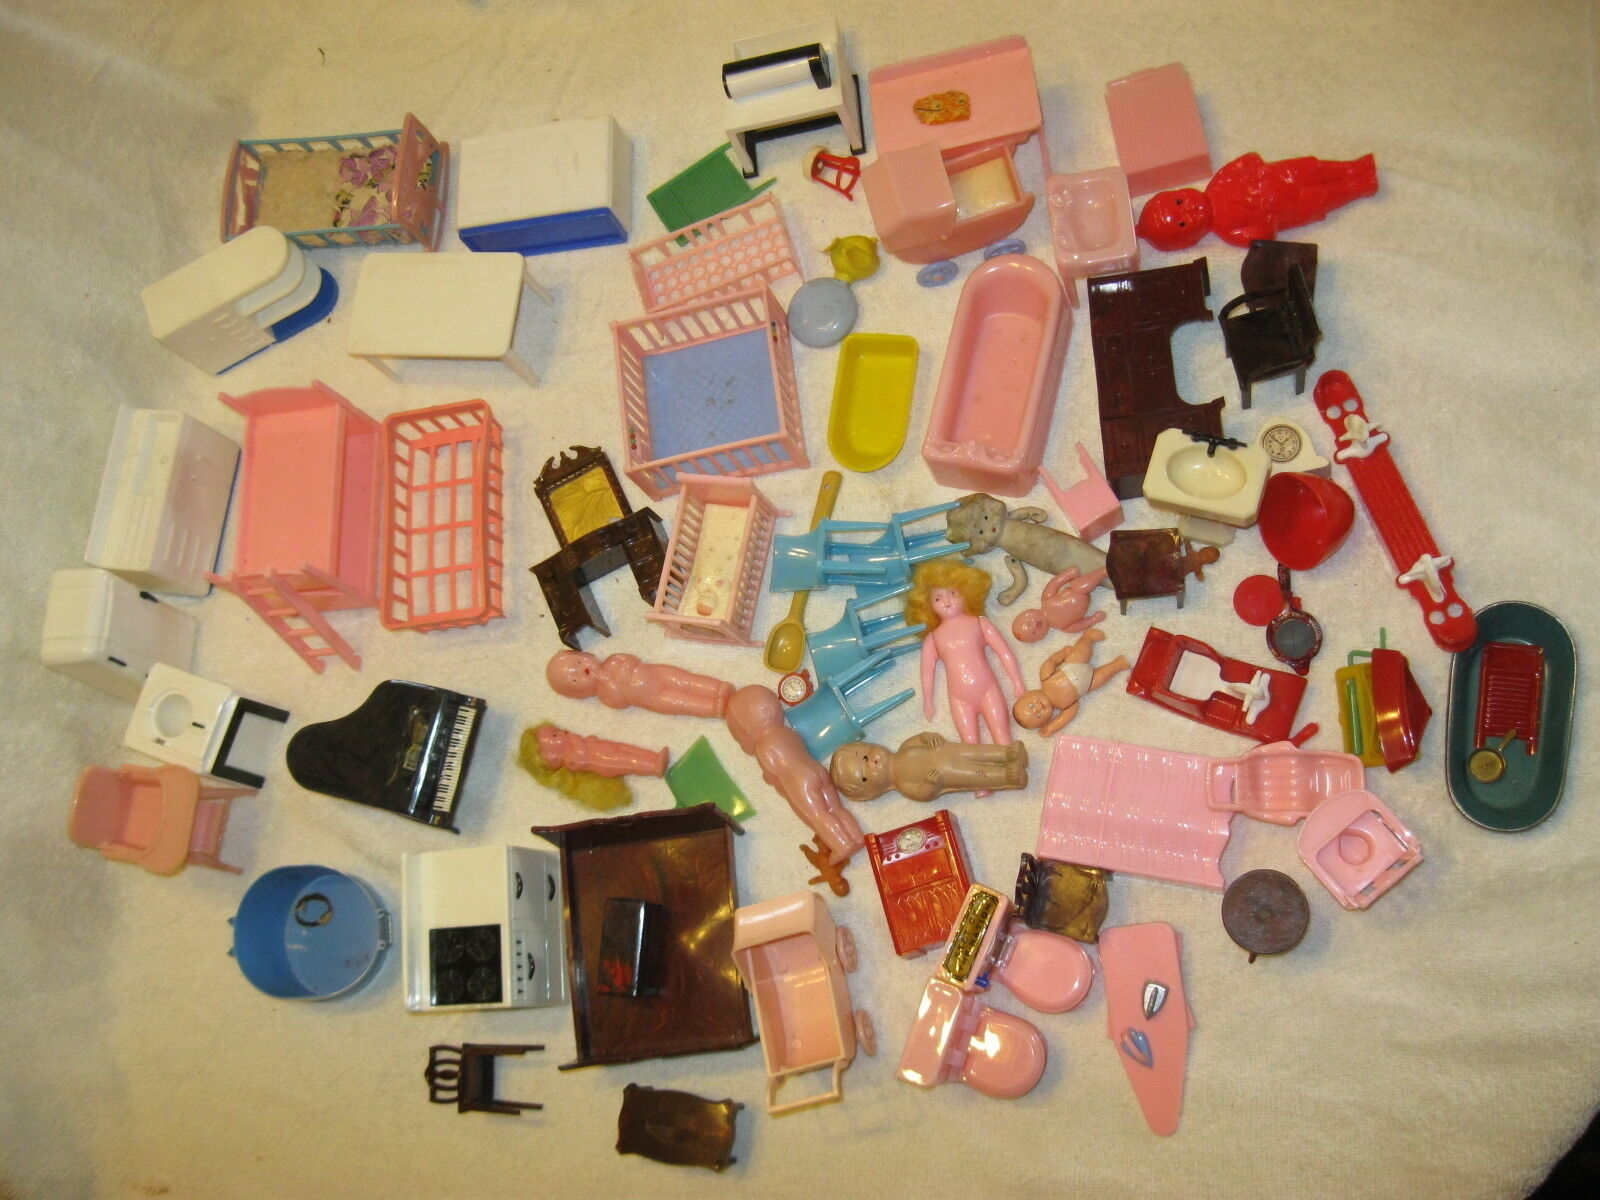 LARGE LOT VINTAGE DOLLHOUSE FURNITURE TUB,TOILETS,CHAIRS,STROLLERS,BEDS,DOLLS